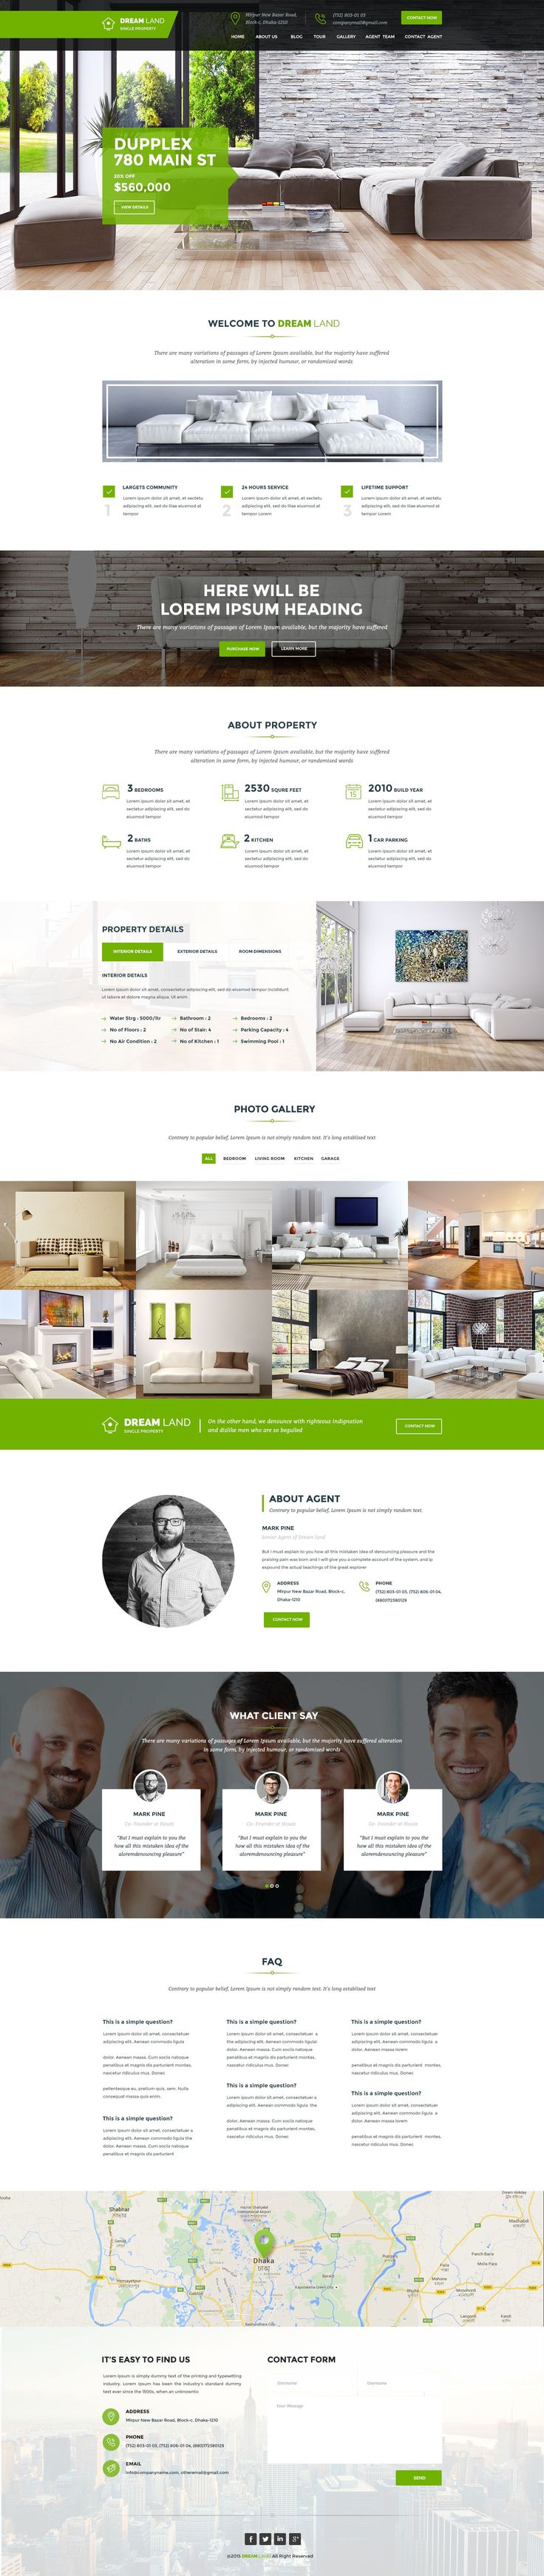 Dream Land Single Property Real Estate WordPress Theme. We have created the theme with real life experience. With 2 types of headers, One page and Multipage. Right fit for Selling your #Villa, Land, #Apartment, #House and Raw Houses. #website